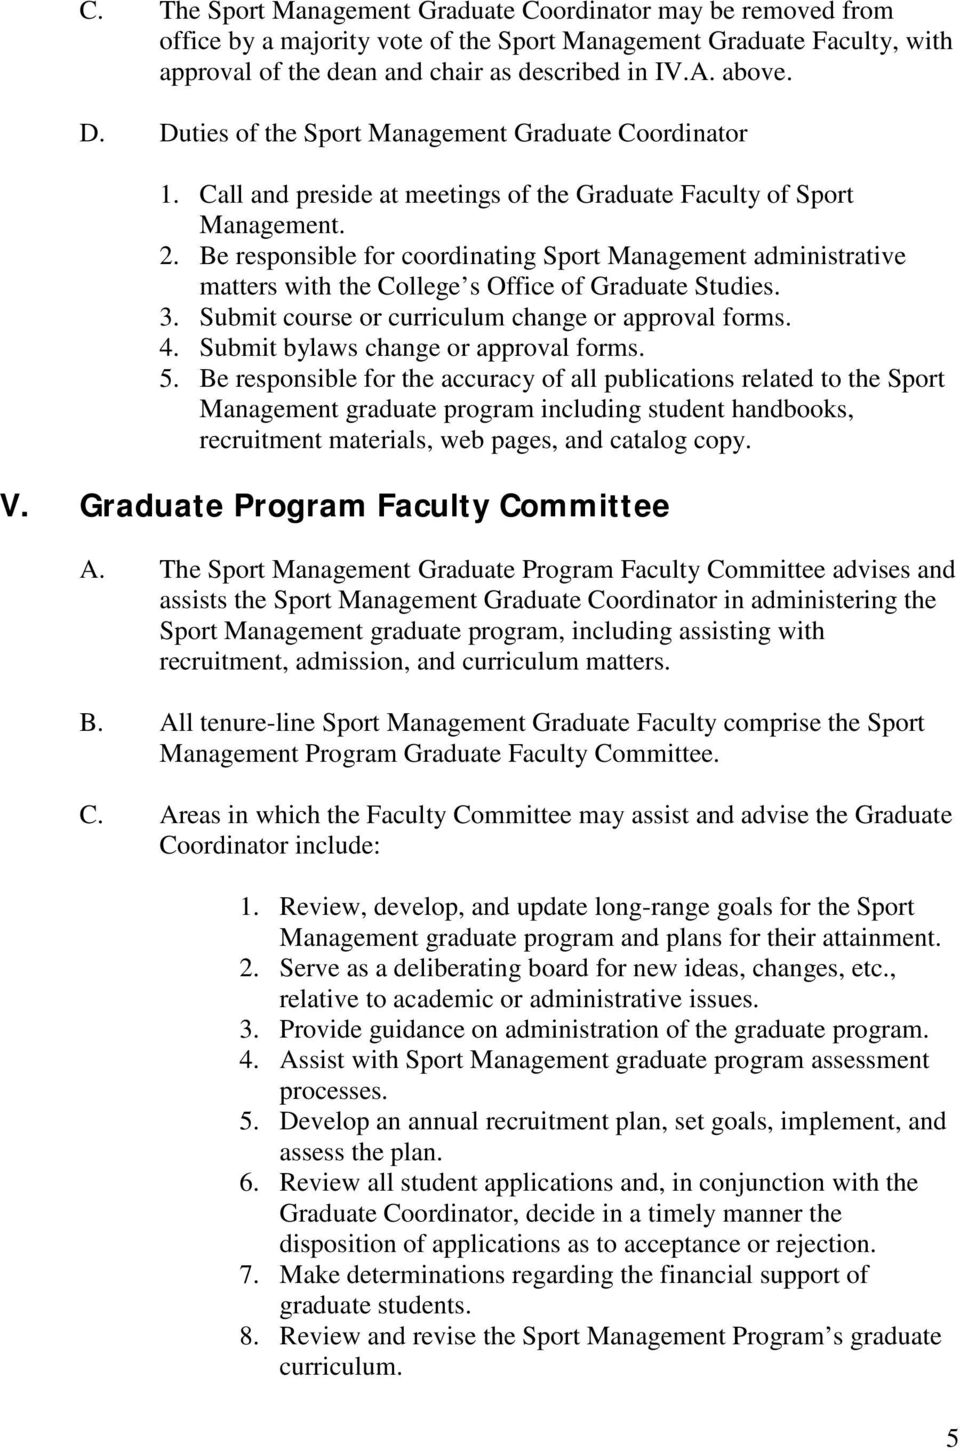 Be responsible for coordinating Sport Management administrative matters with the College s Office of Graduate Studies. 3. Submit course or curriculum change or approval forms. 4.